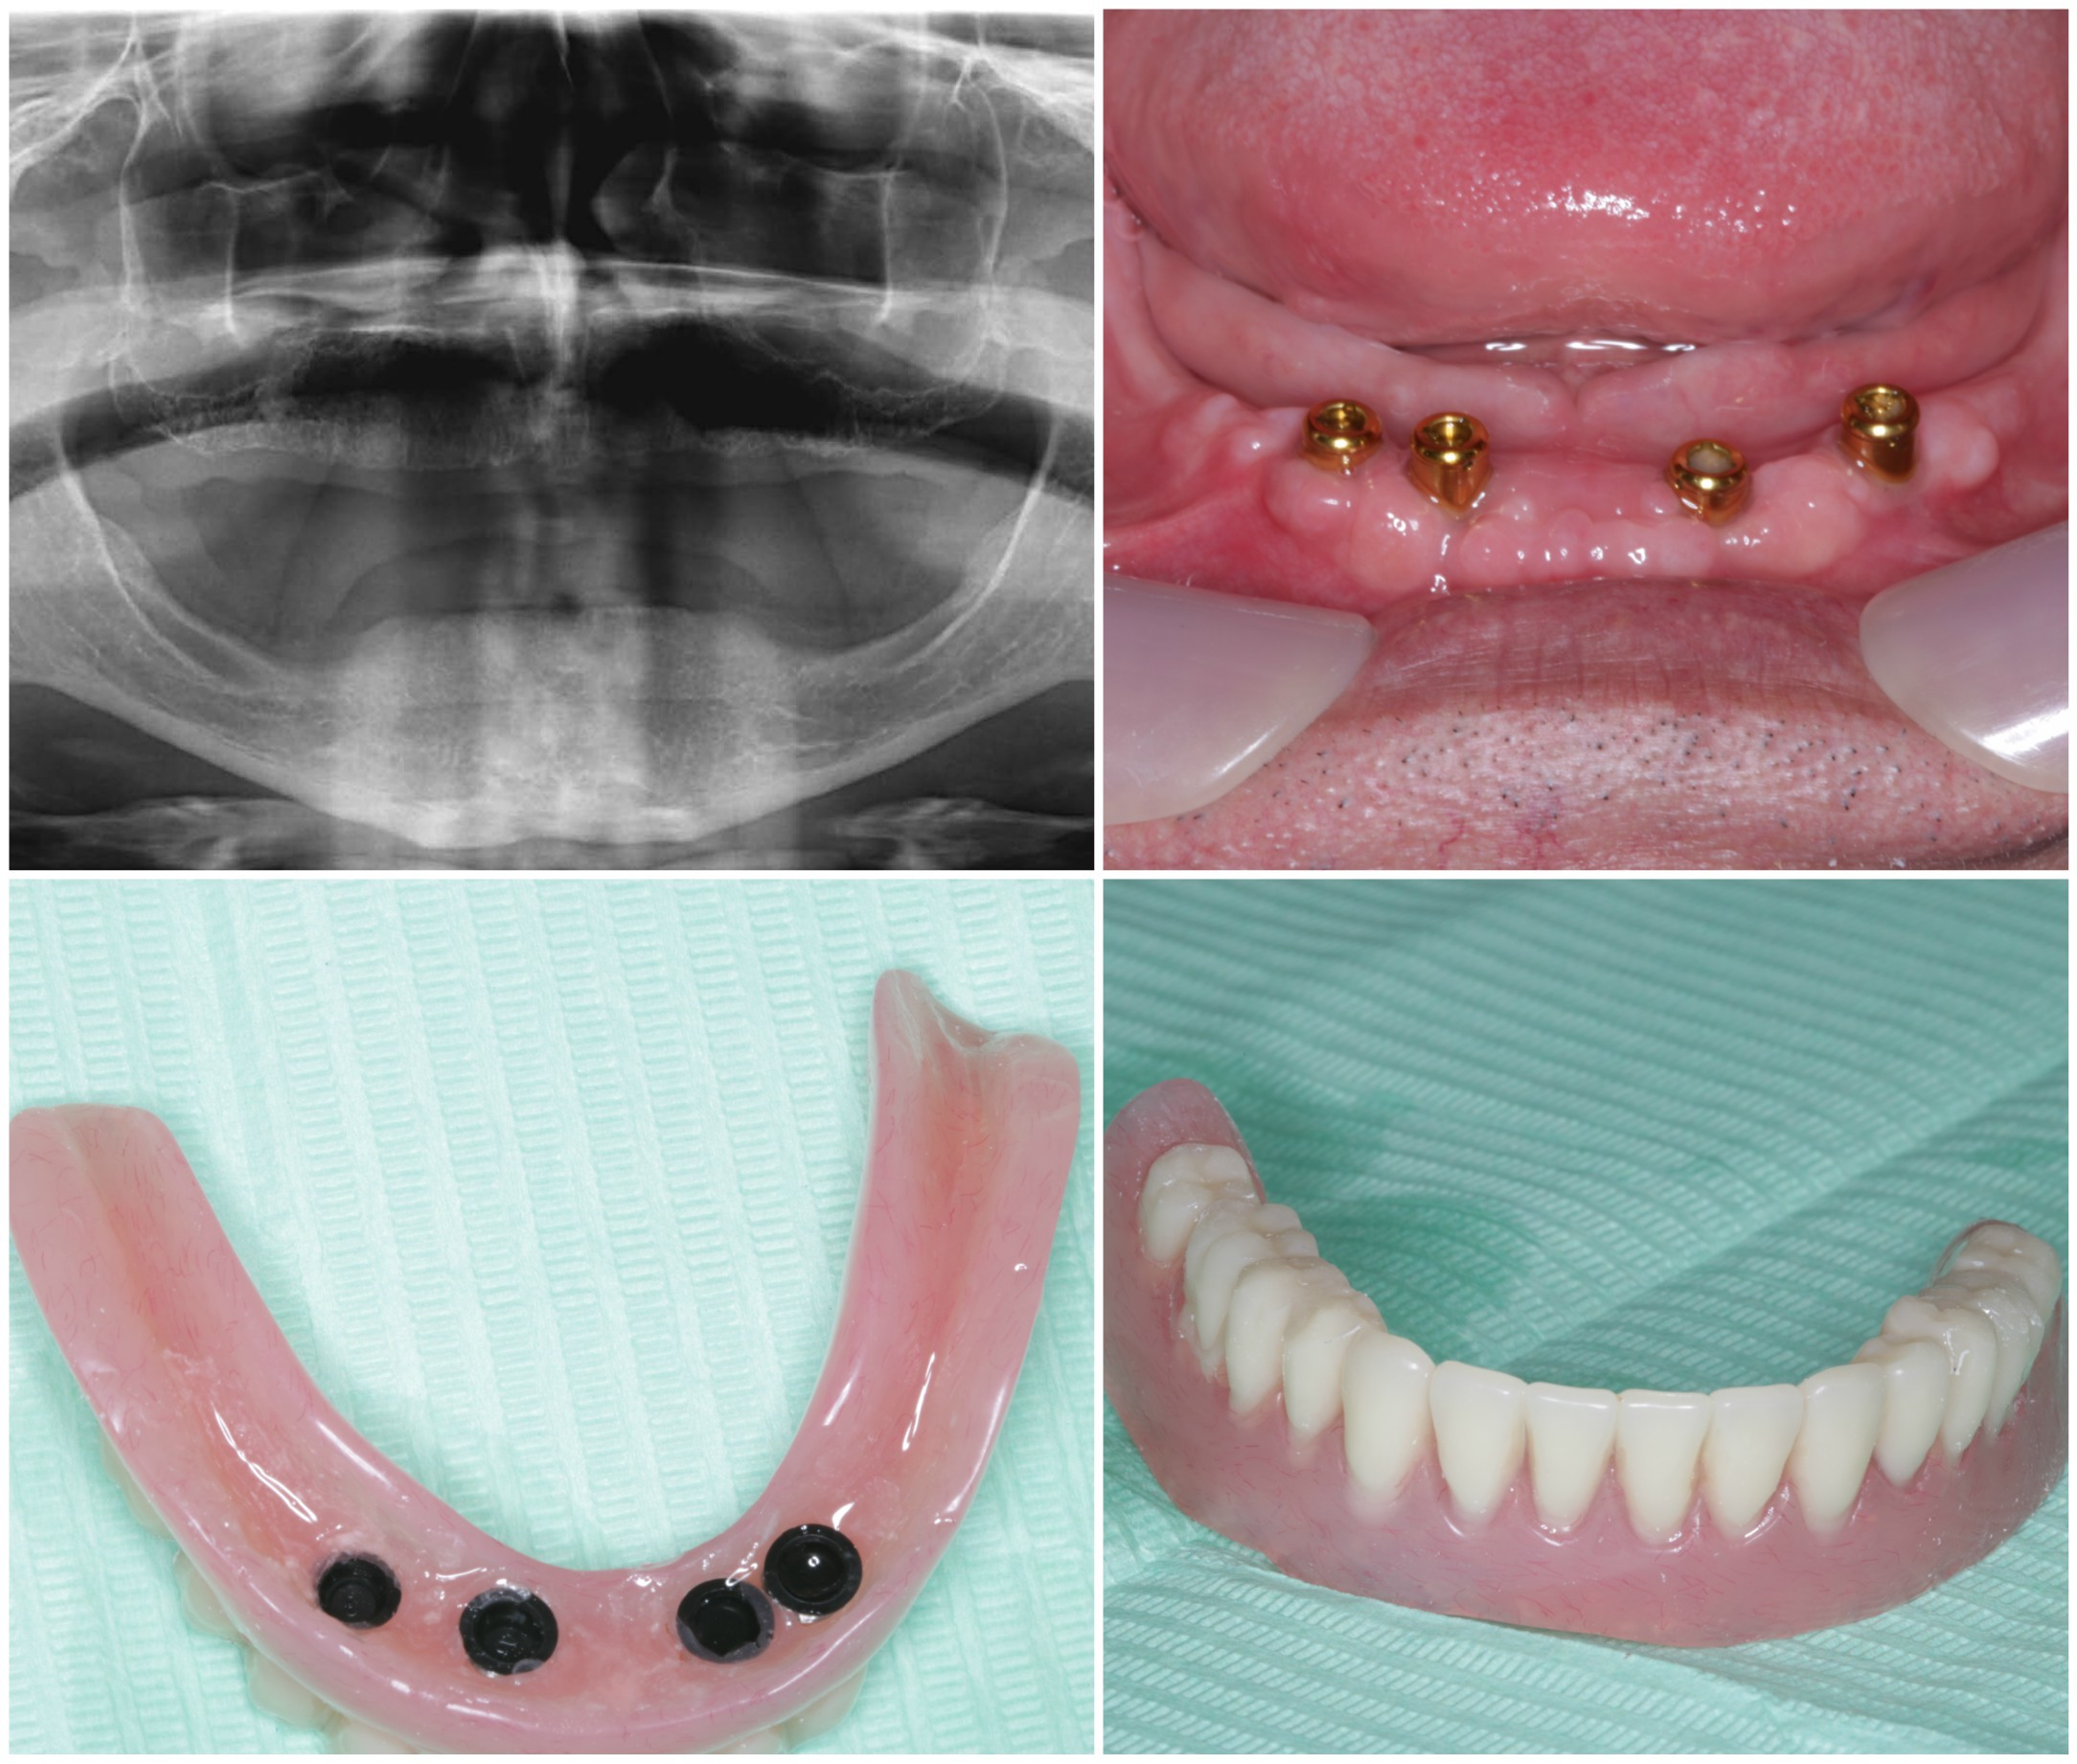 9a denture implants